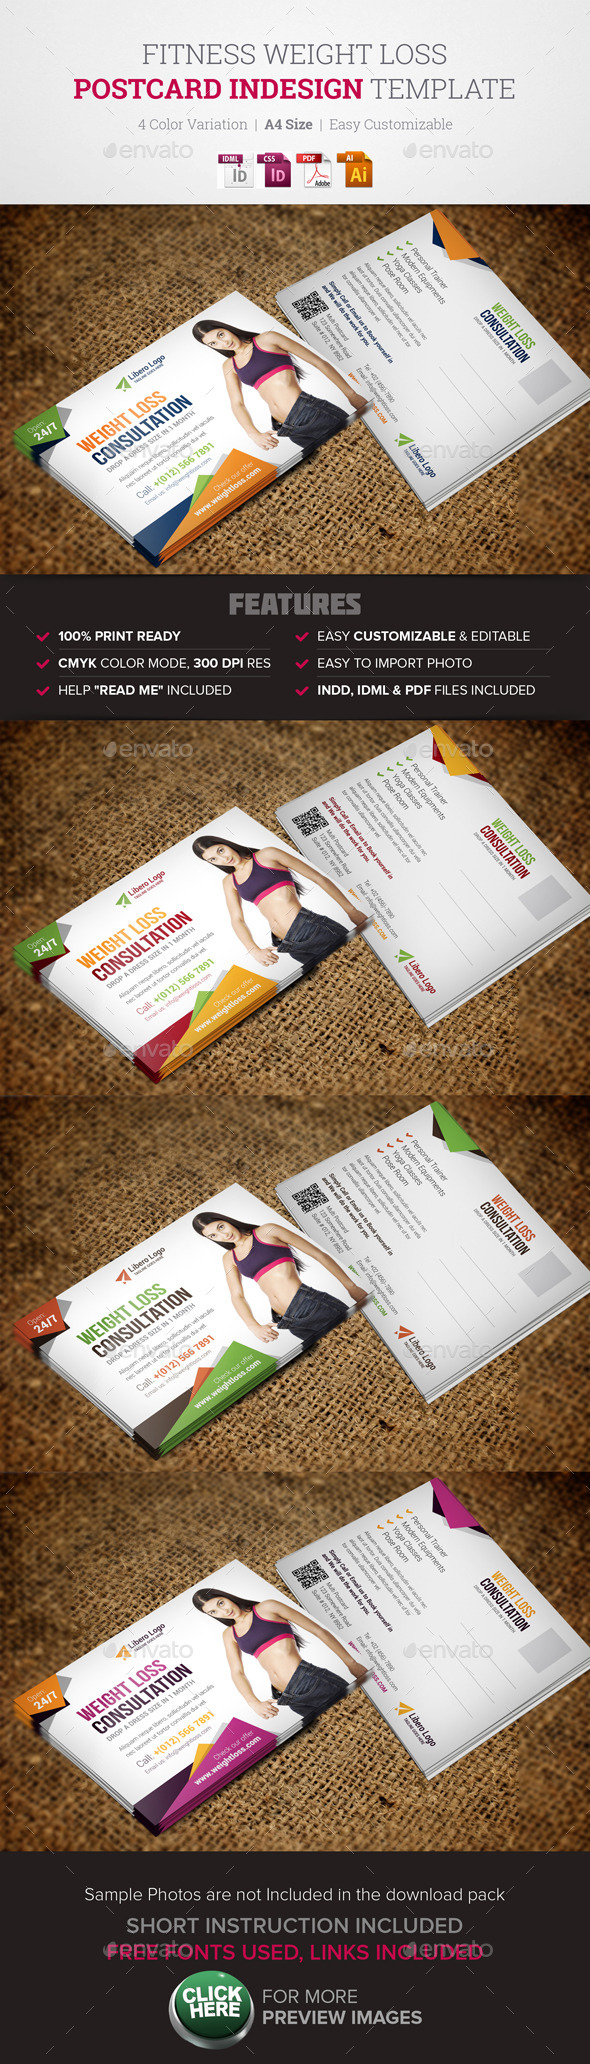 GraphicRiver Fitness Weight Loss Postcard InDesign Template 11333430